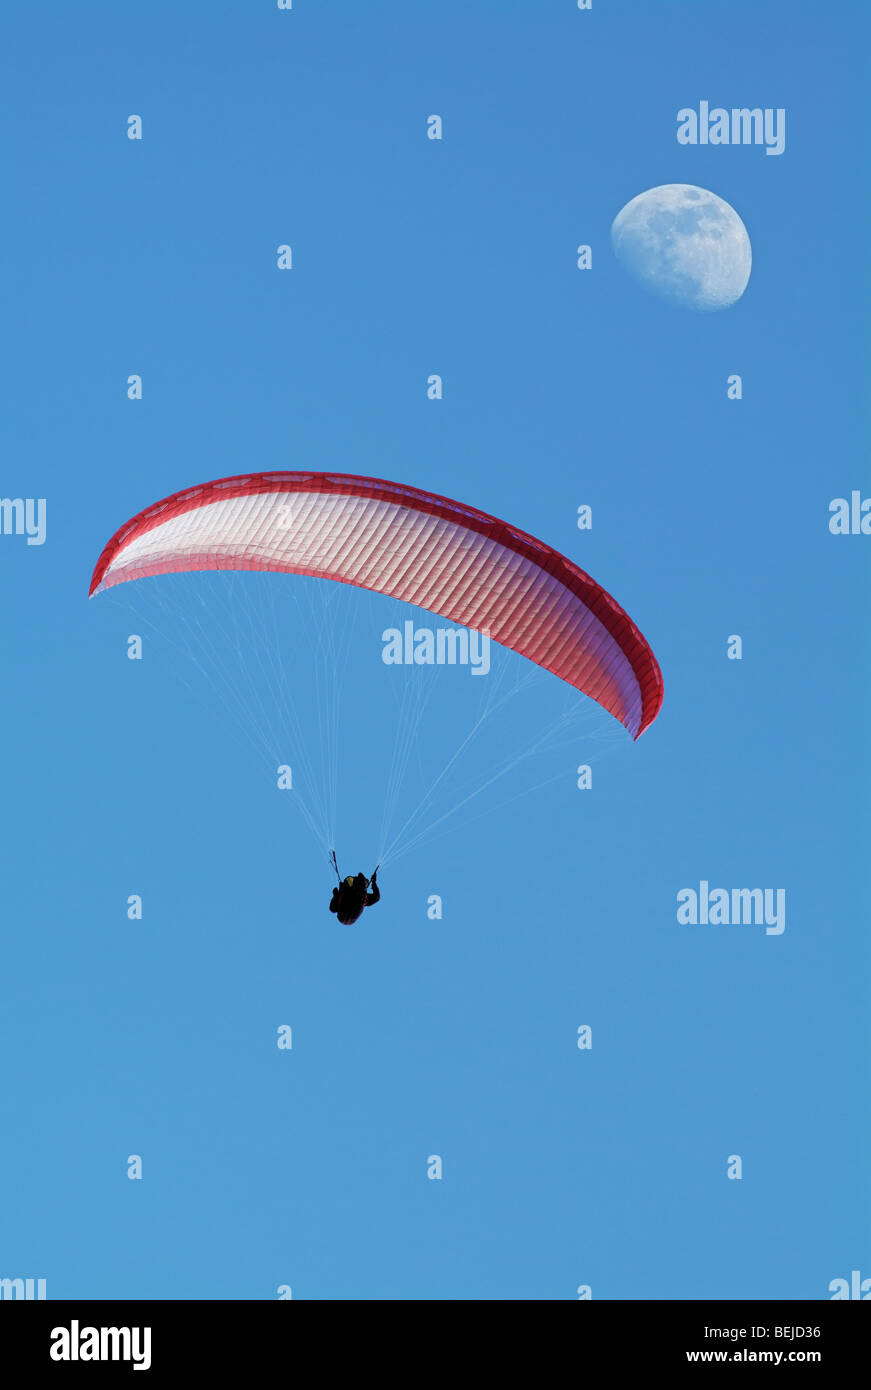 Paraglider in Mid Air, Low Angle. Stock Photo